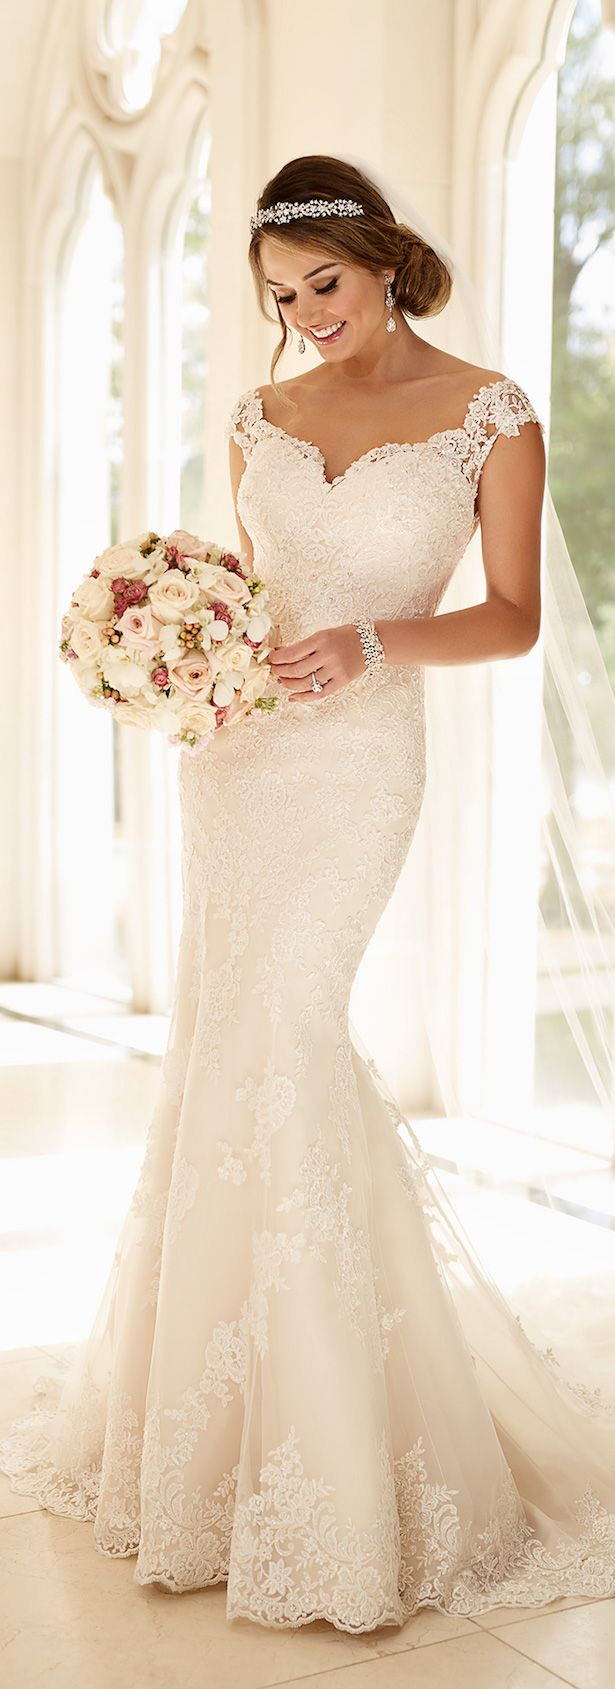 Stella York Spring 2016 Bridal Collection #WeddingDress we provide all kinds of…